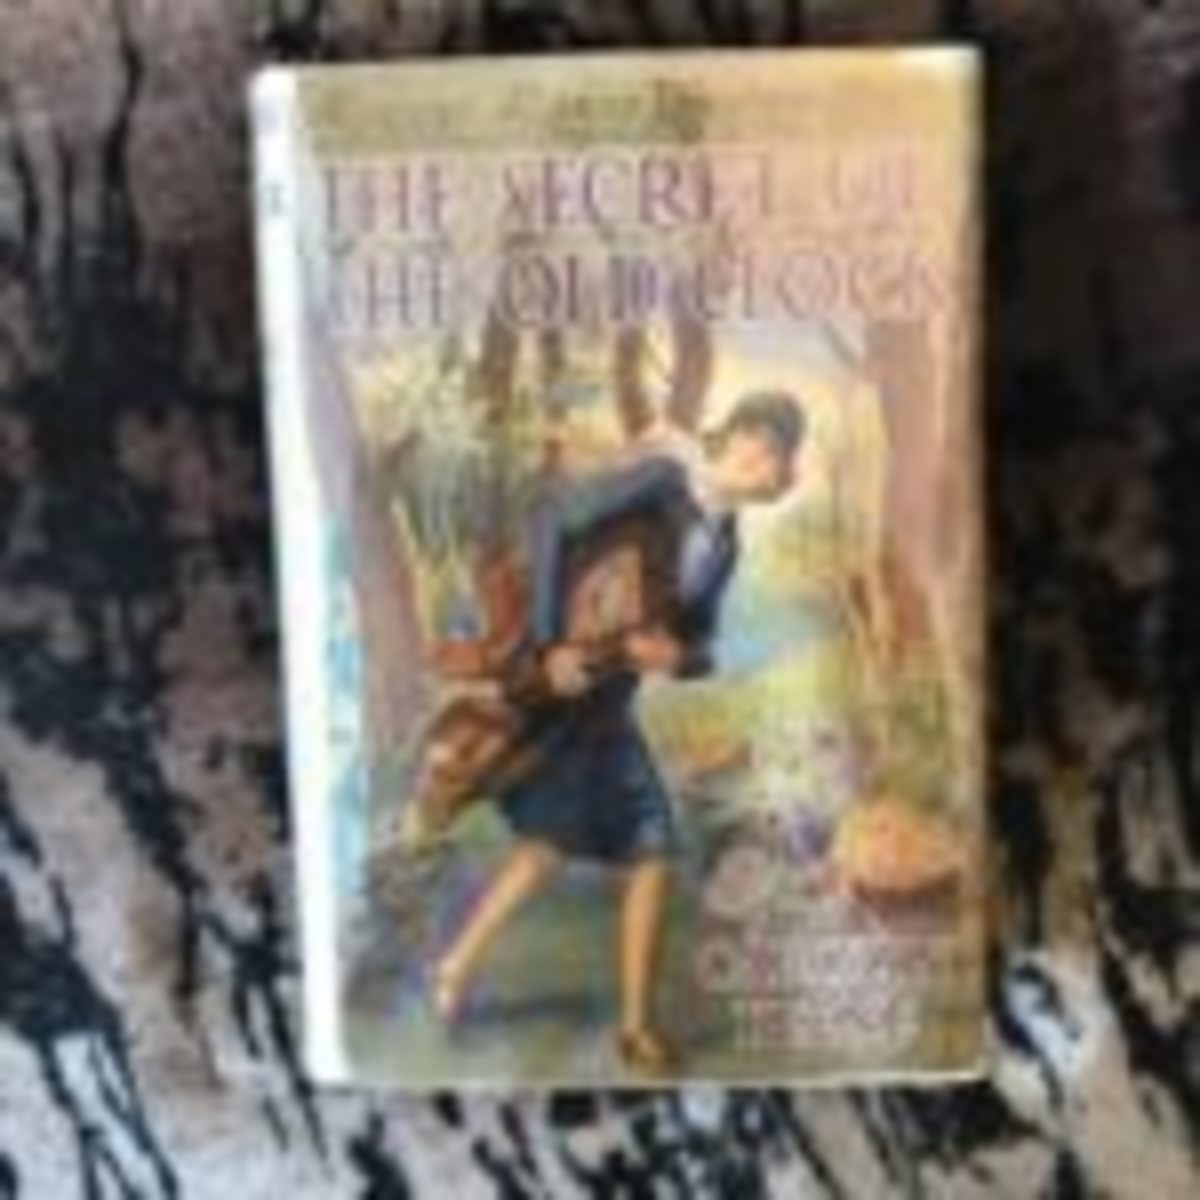 Nancy Drew 1930 The Secret of the Old Clock – the first Nancy Drew book – signed by ghostwriter Mildred Wirt Benson.